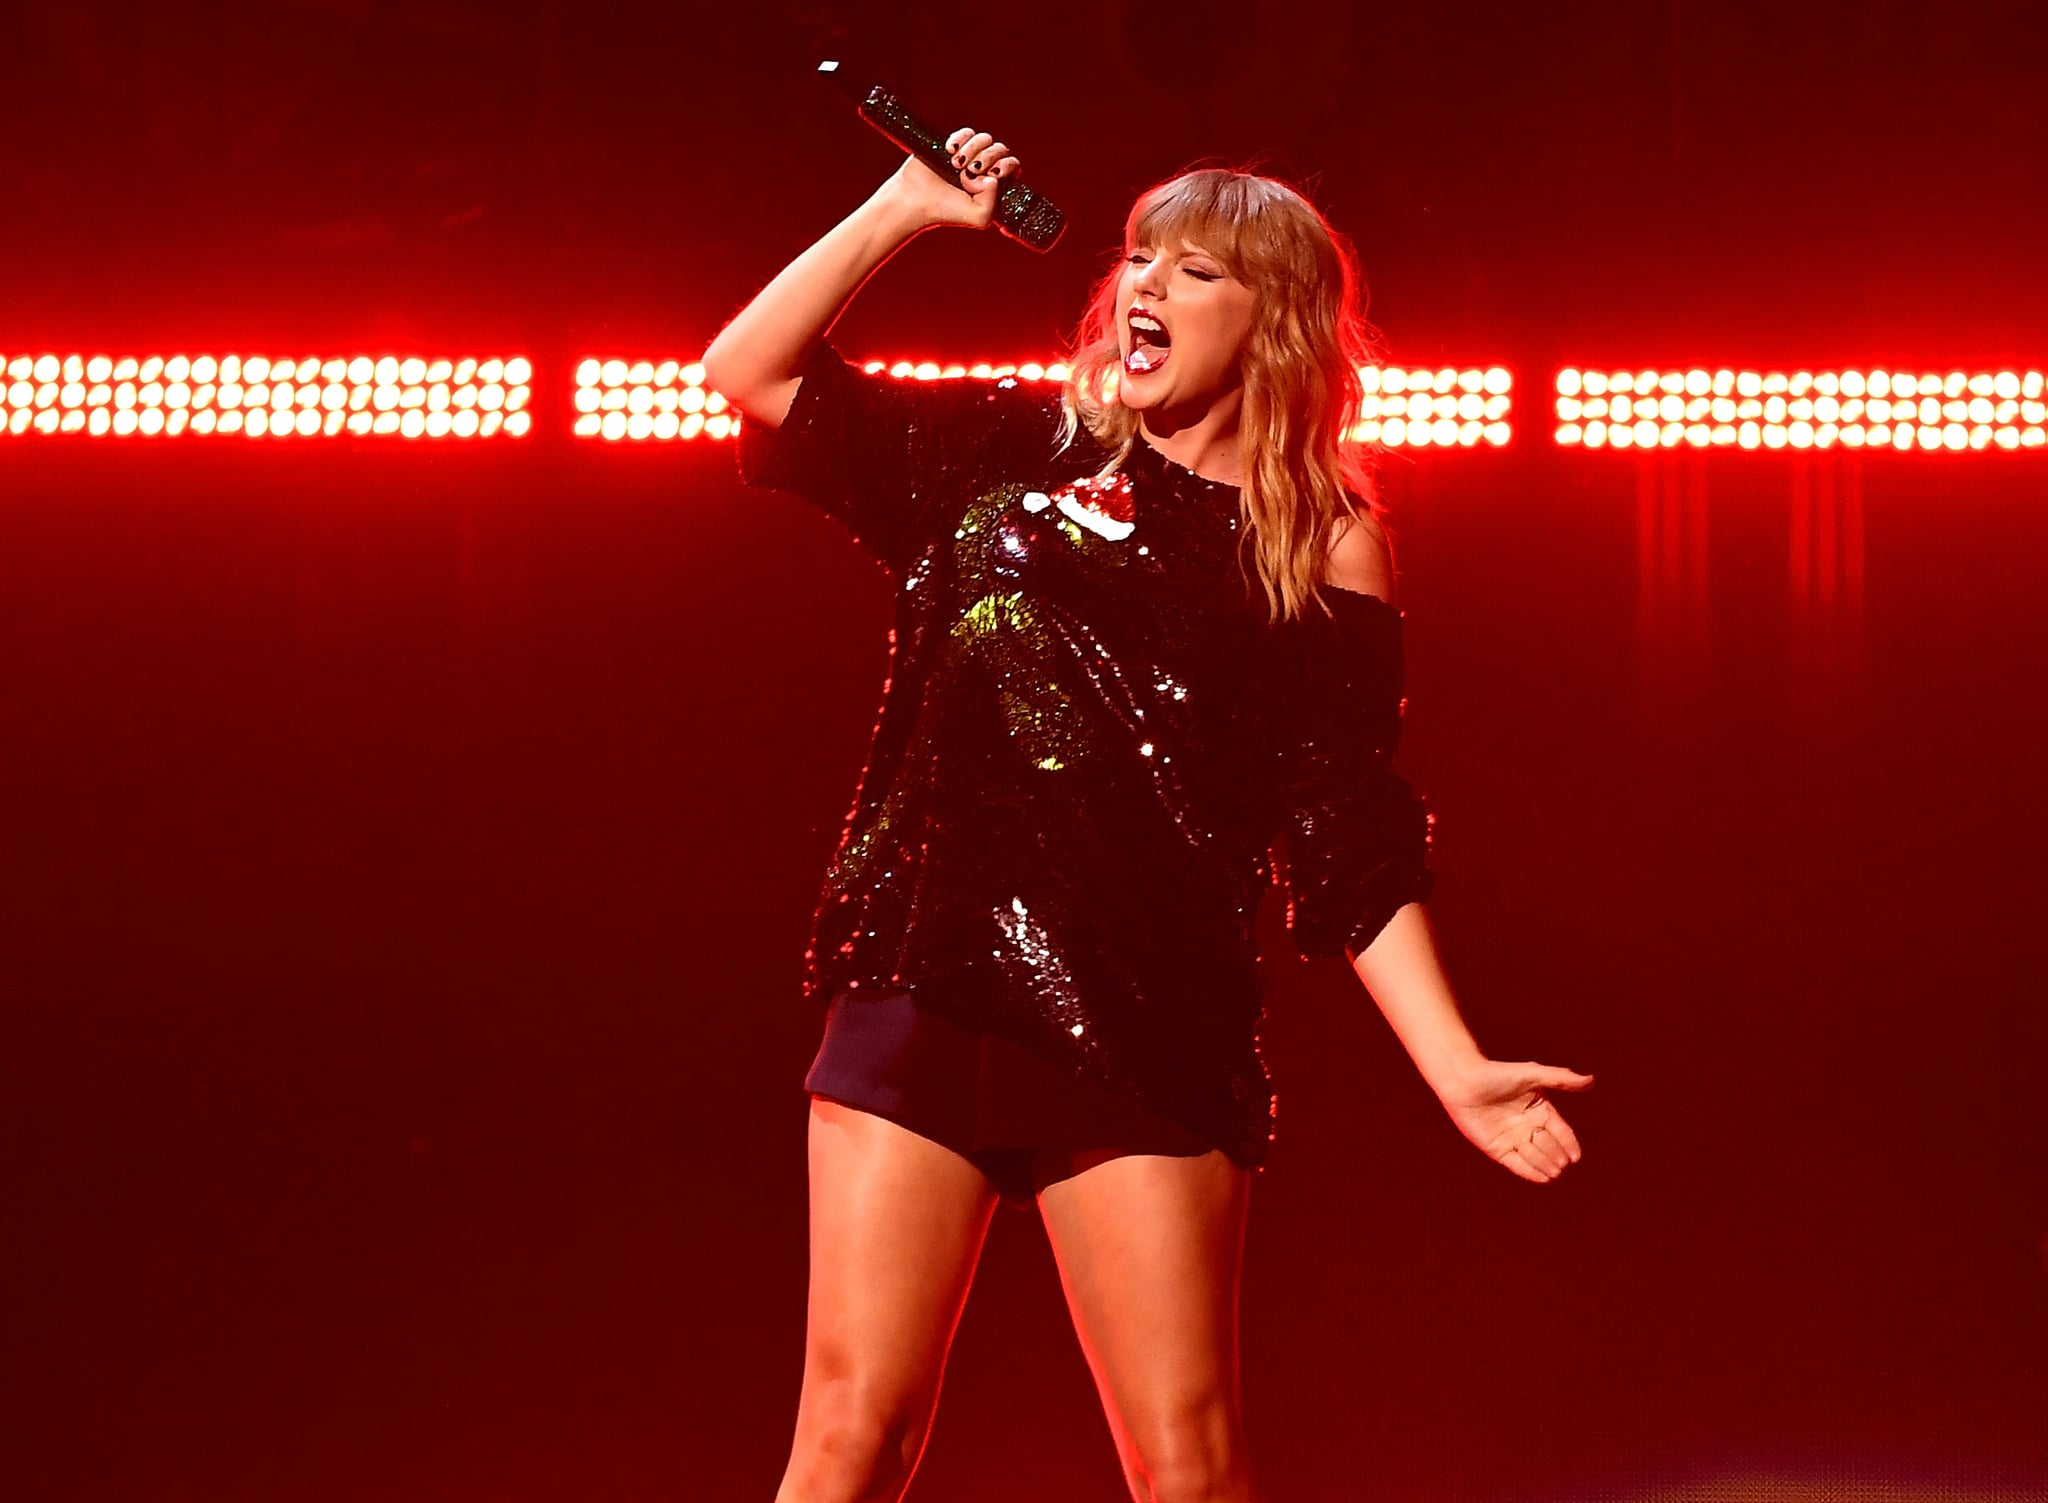 Taylor Swift teases 'End Game' video class=